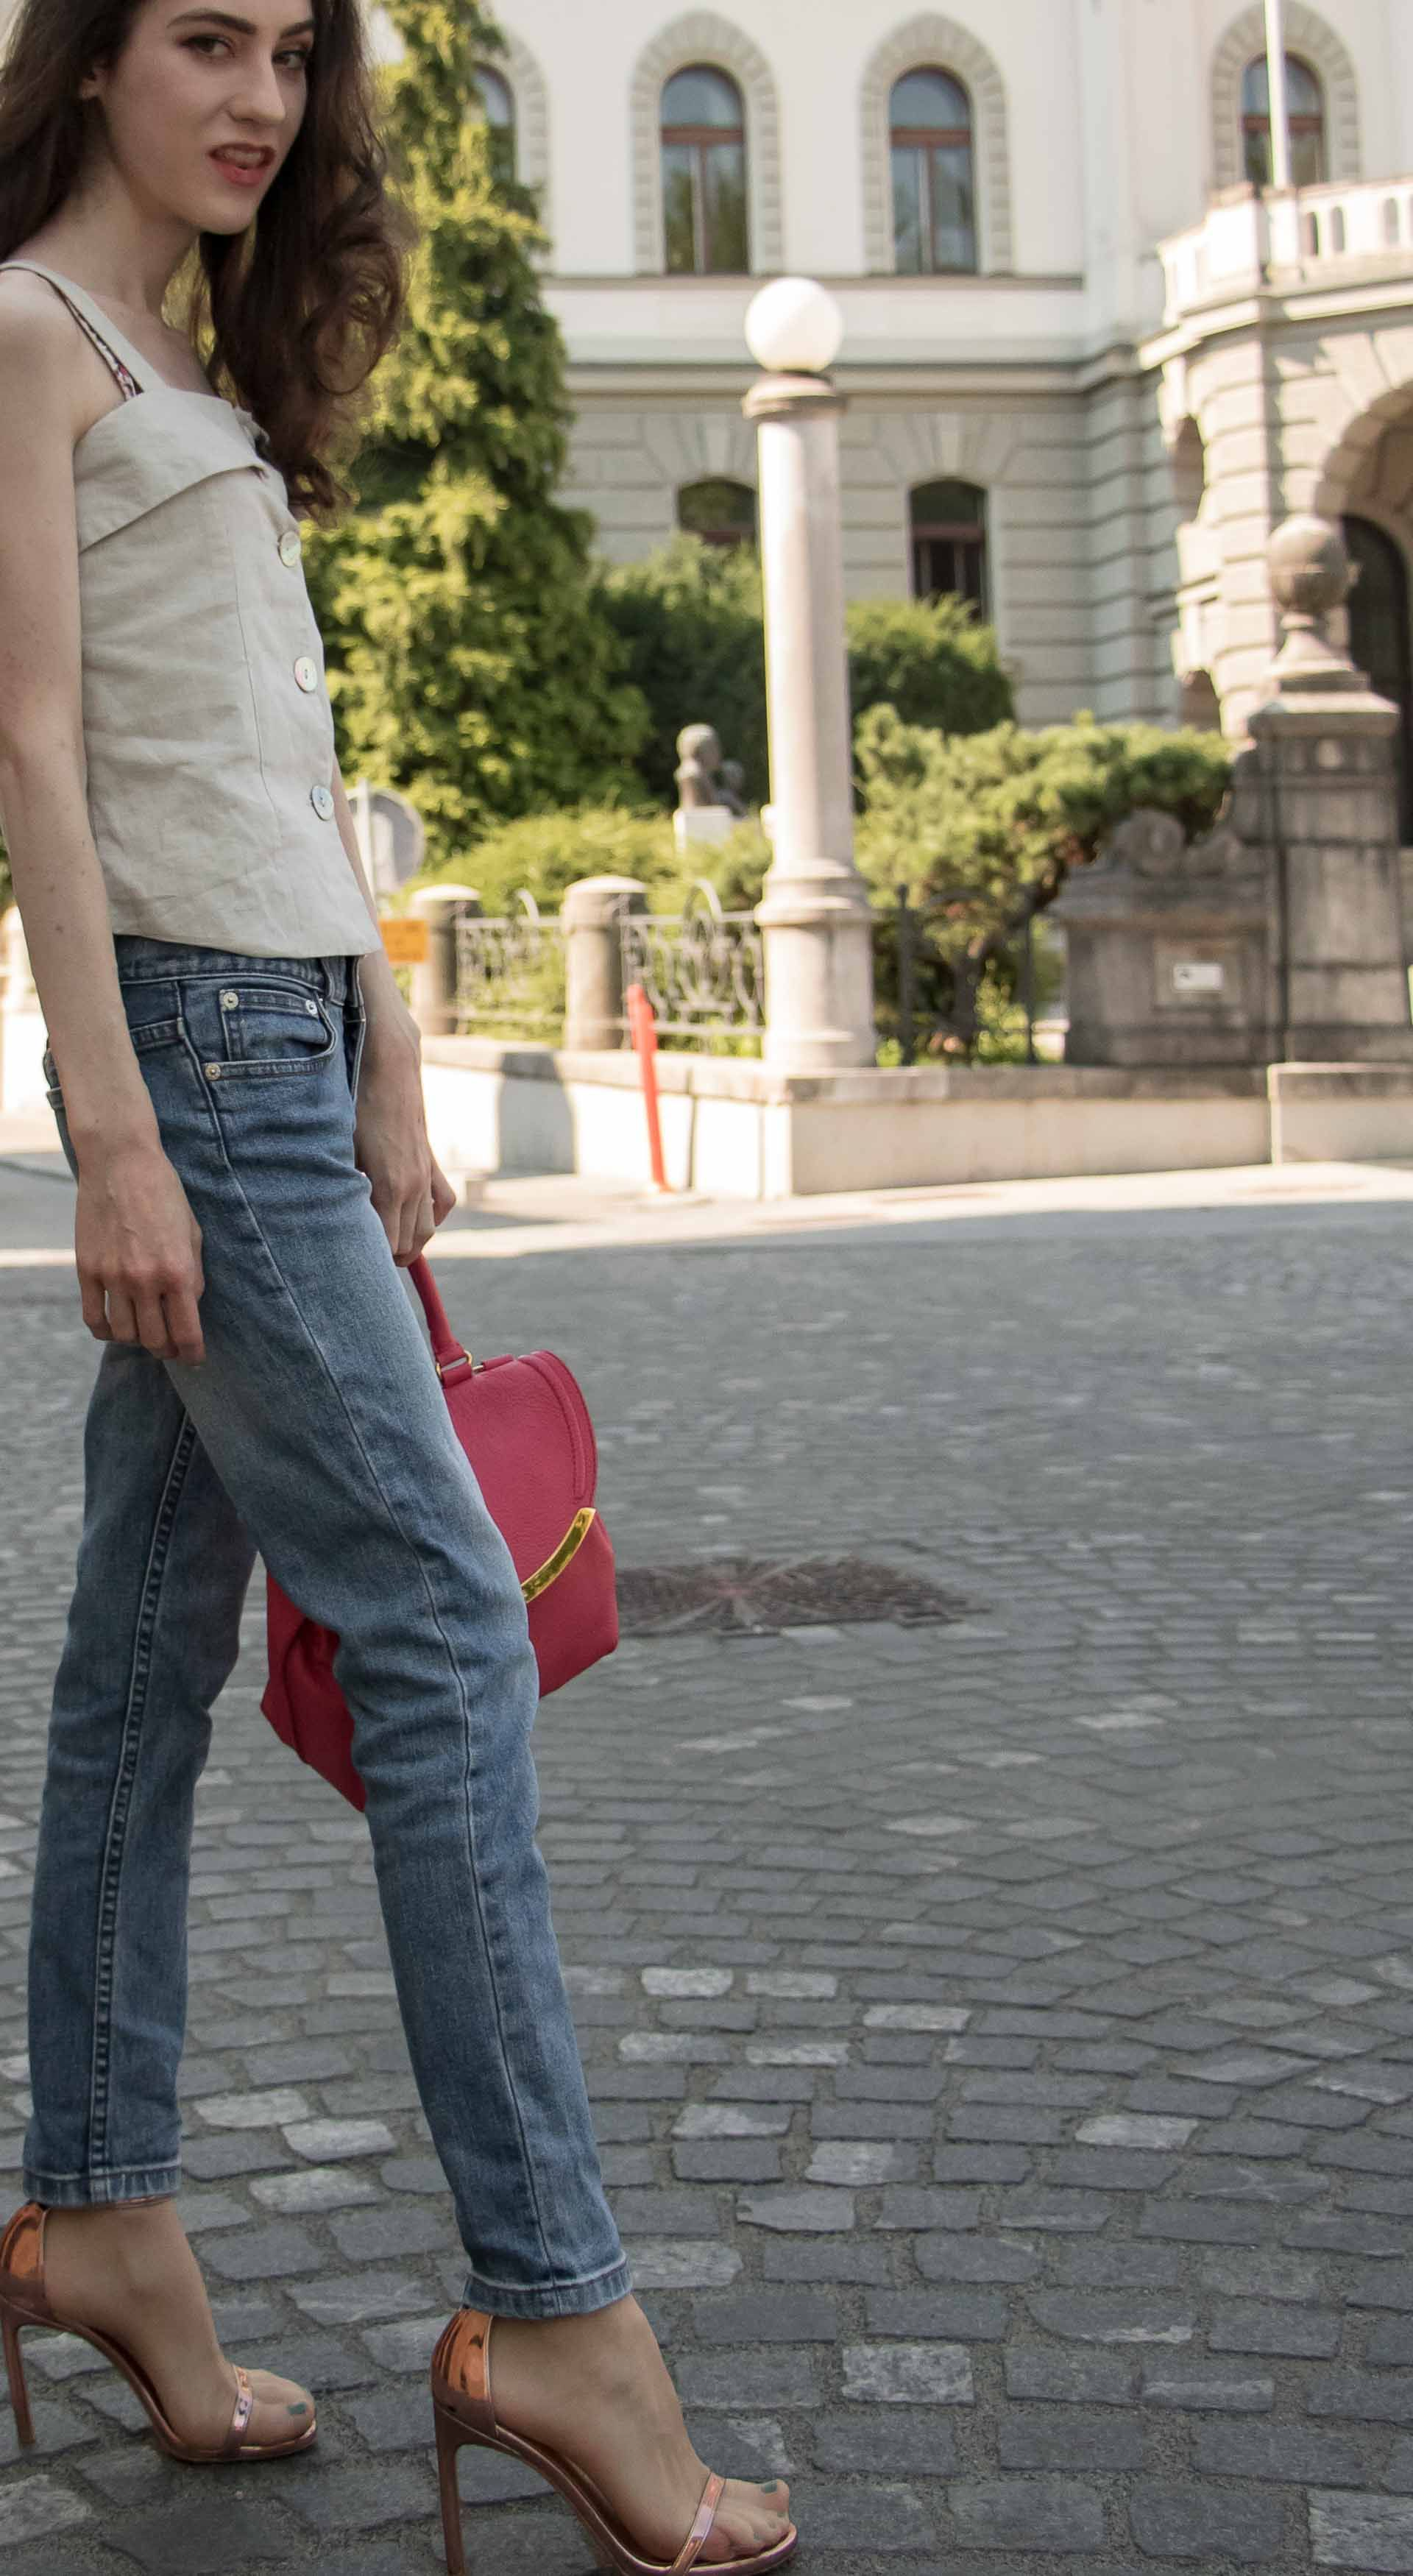 c01d2b94a089 Slovenian Fashion Blogger Veronika Lipar of Brunette from Wall wearing  straight-leg jeans from A.P.C.